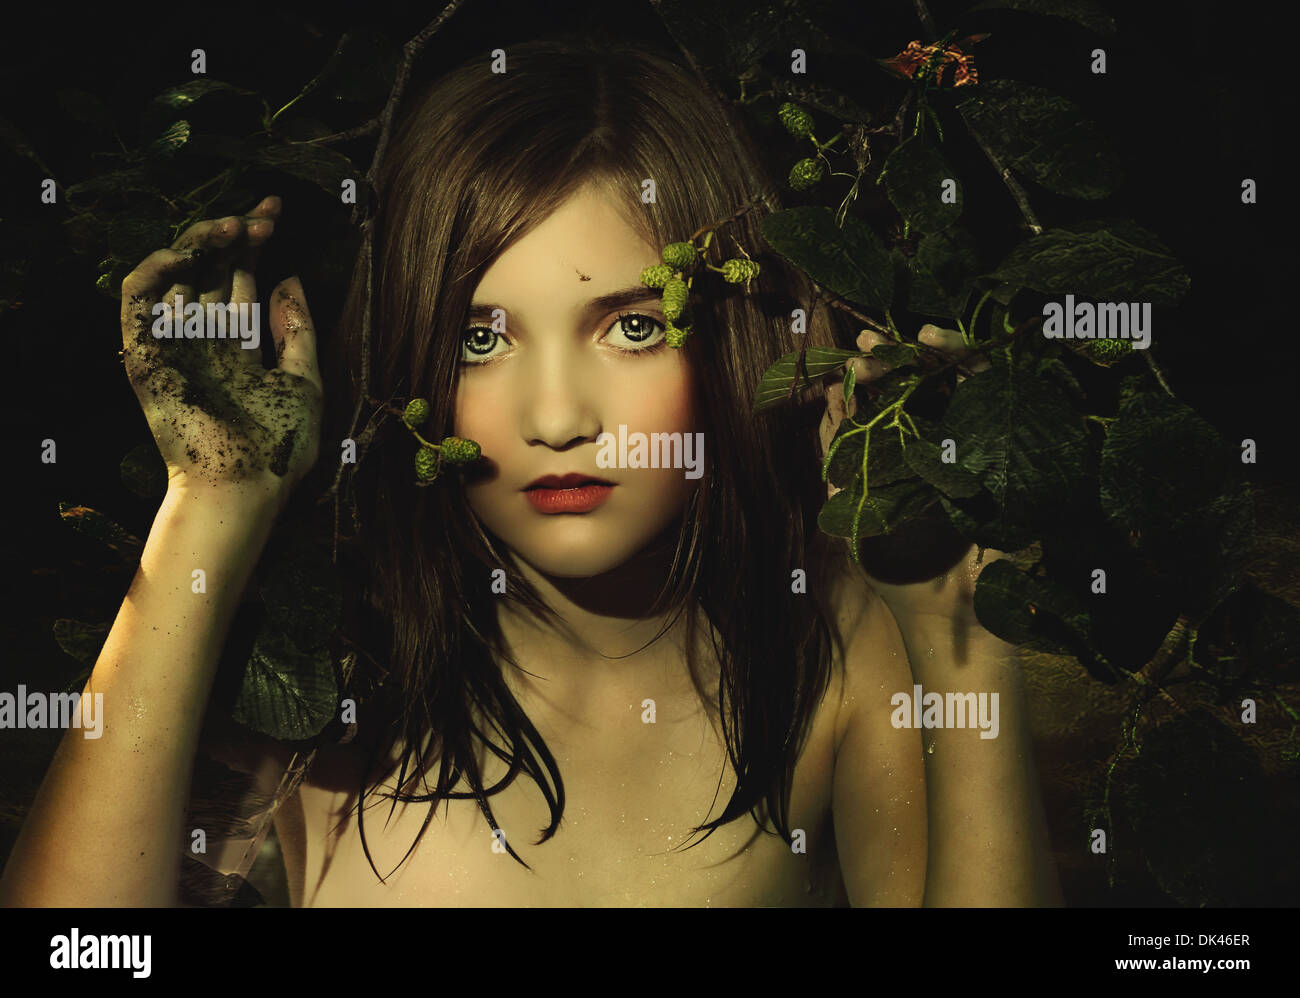 Girl in water with nature - Stock Image